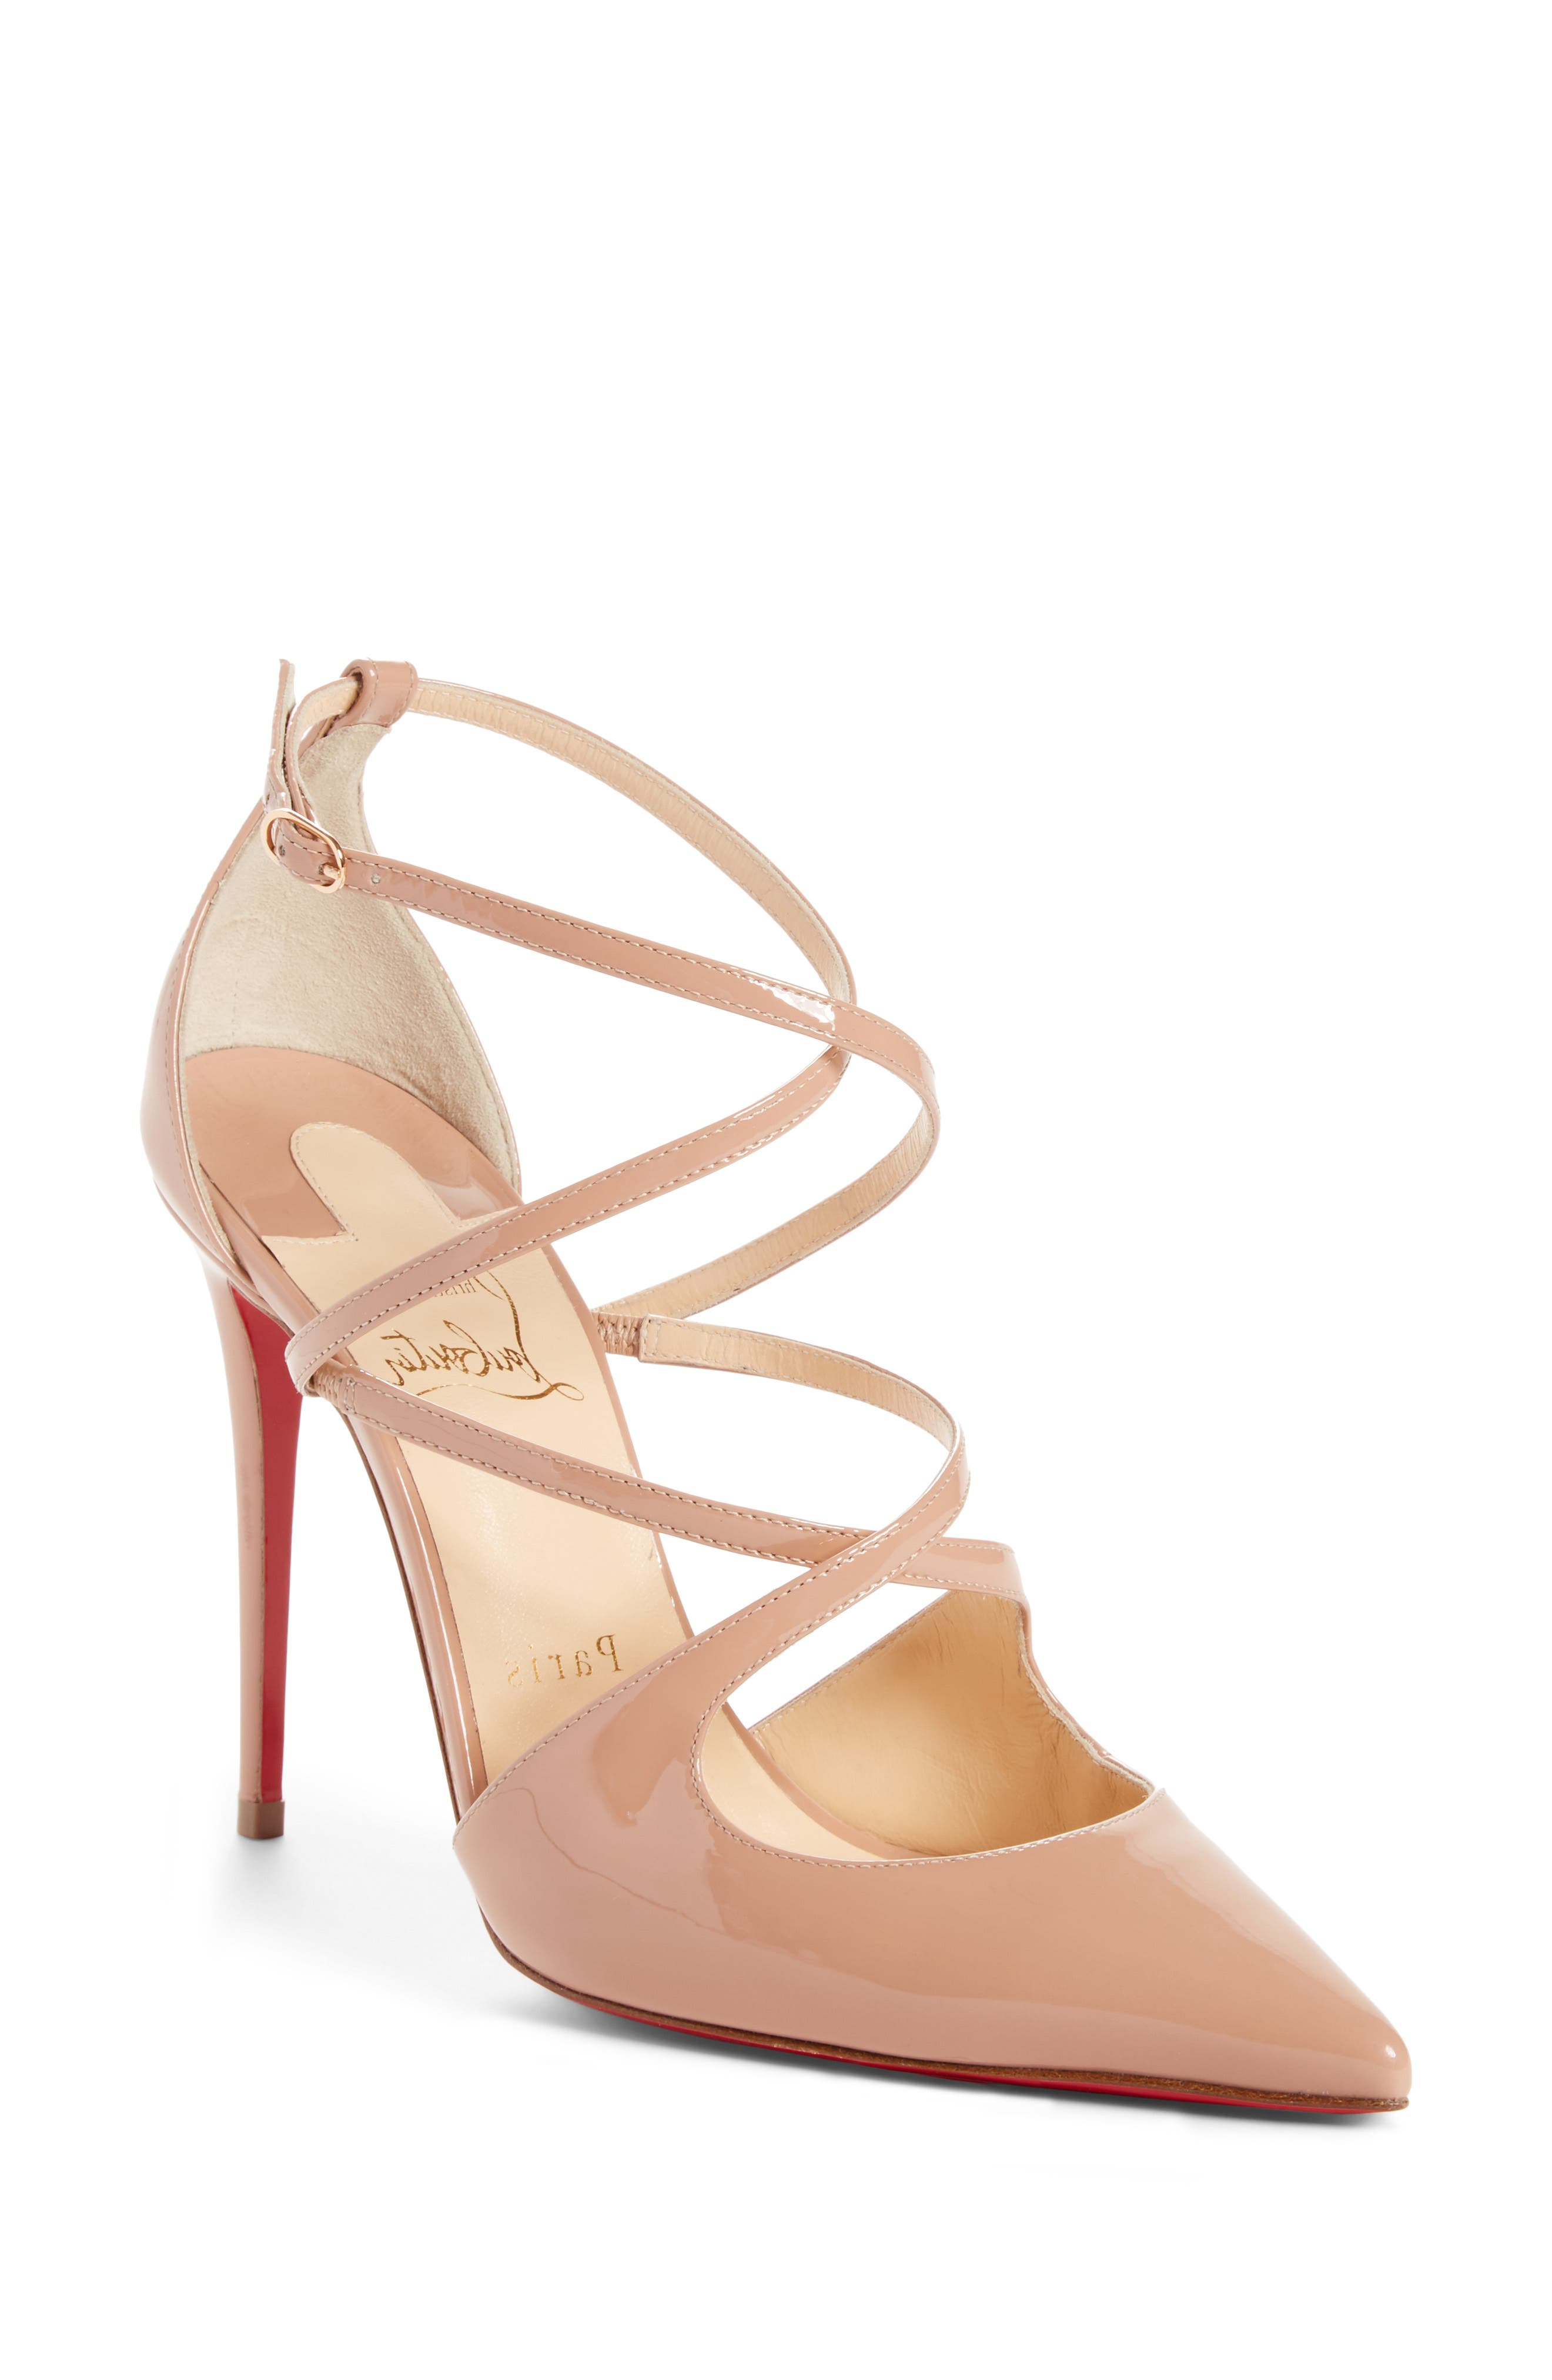 Christian Louboutin Crossfliketa Pump (Women)